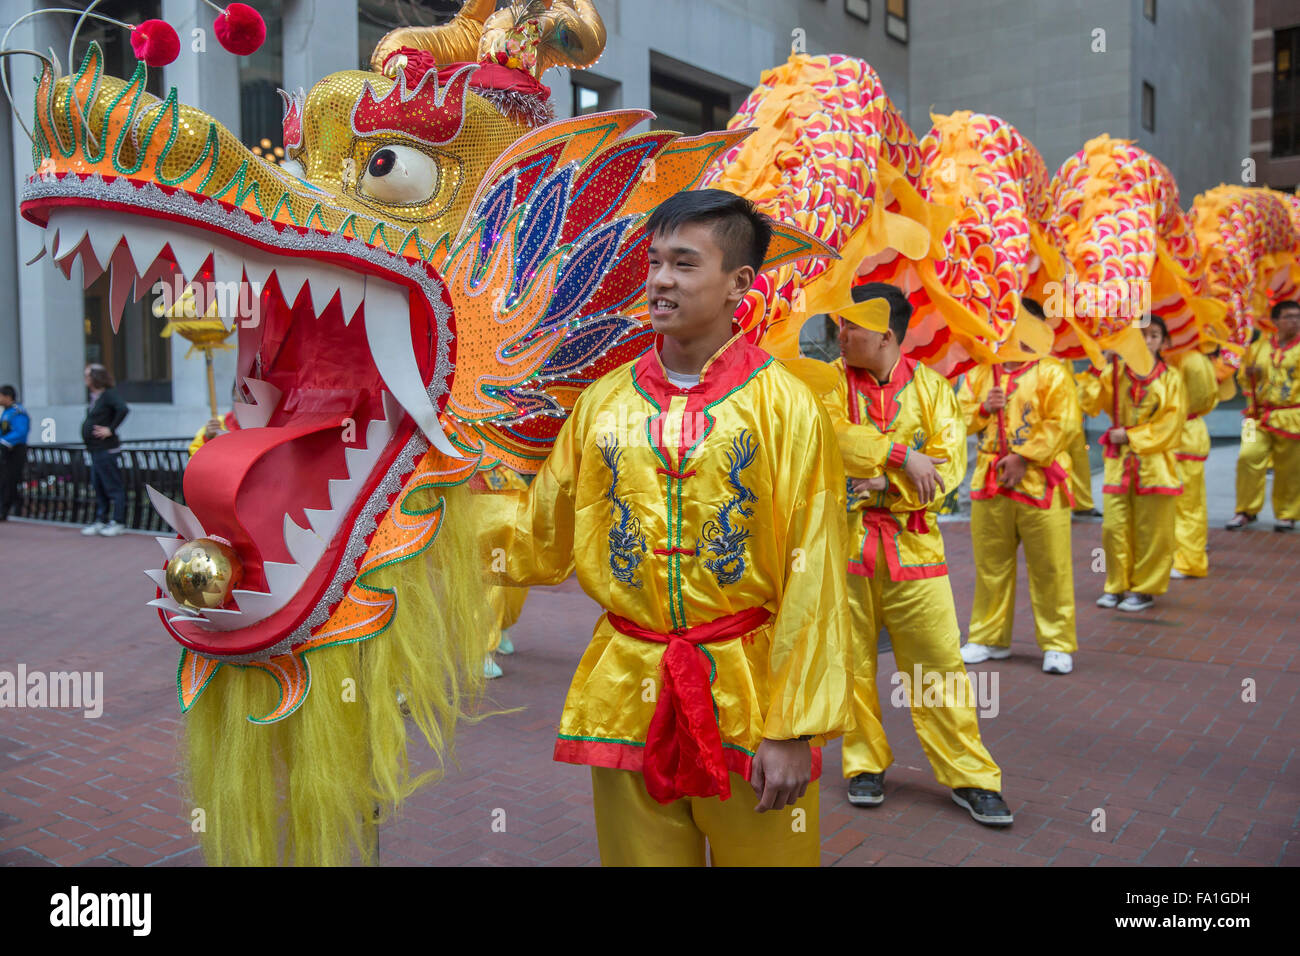 Dragon handlers dressed in colorful costumes at San Francisco Chinese New Year parade. - Stock Image